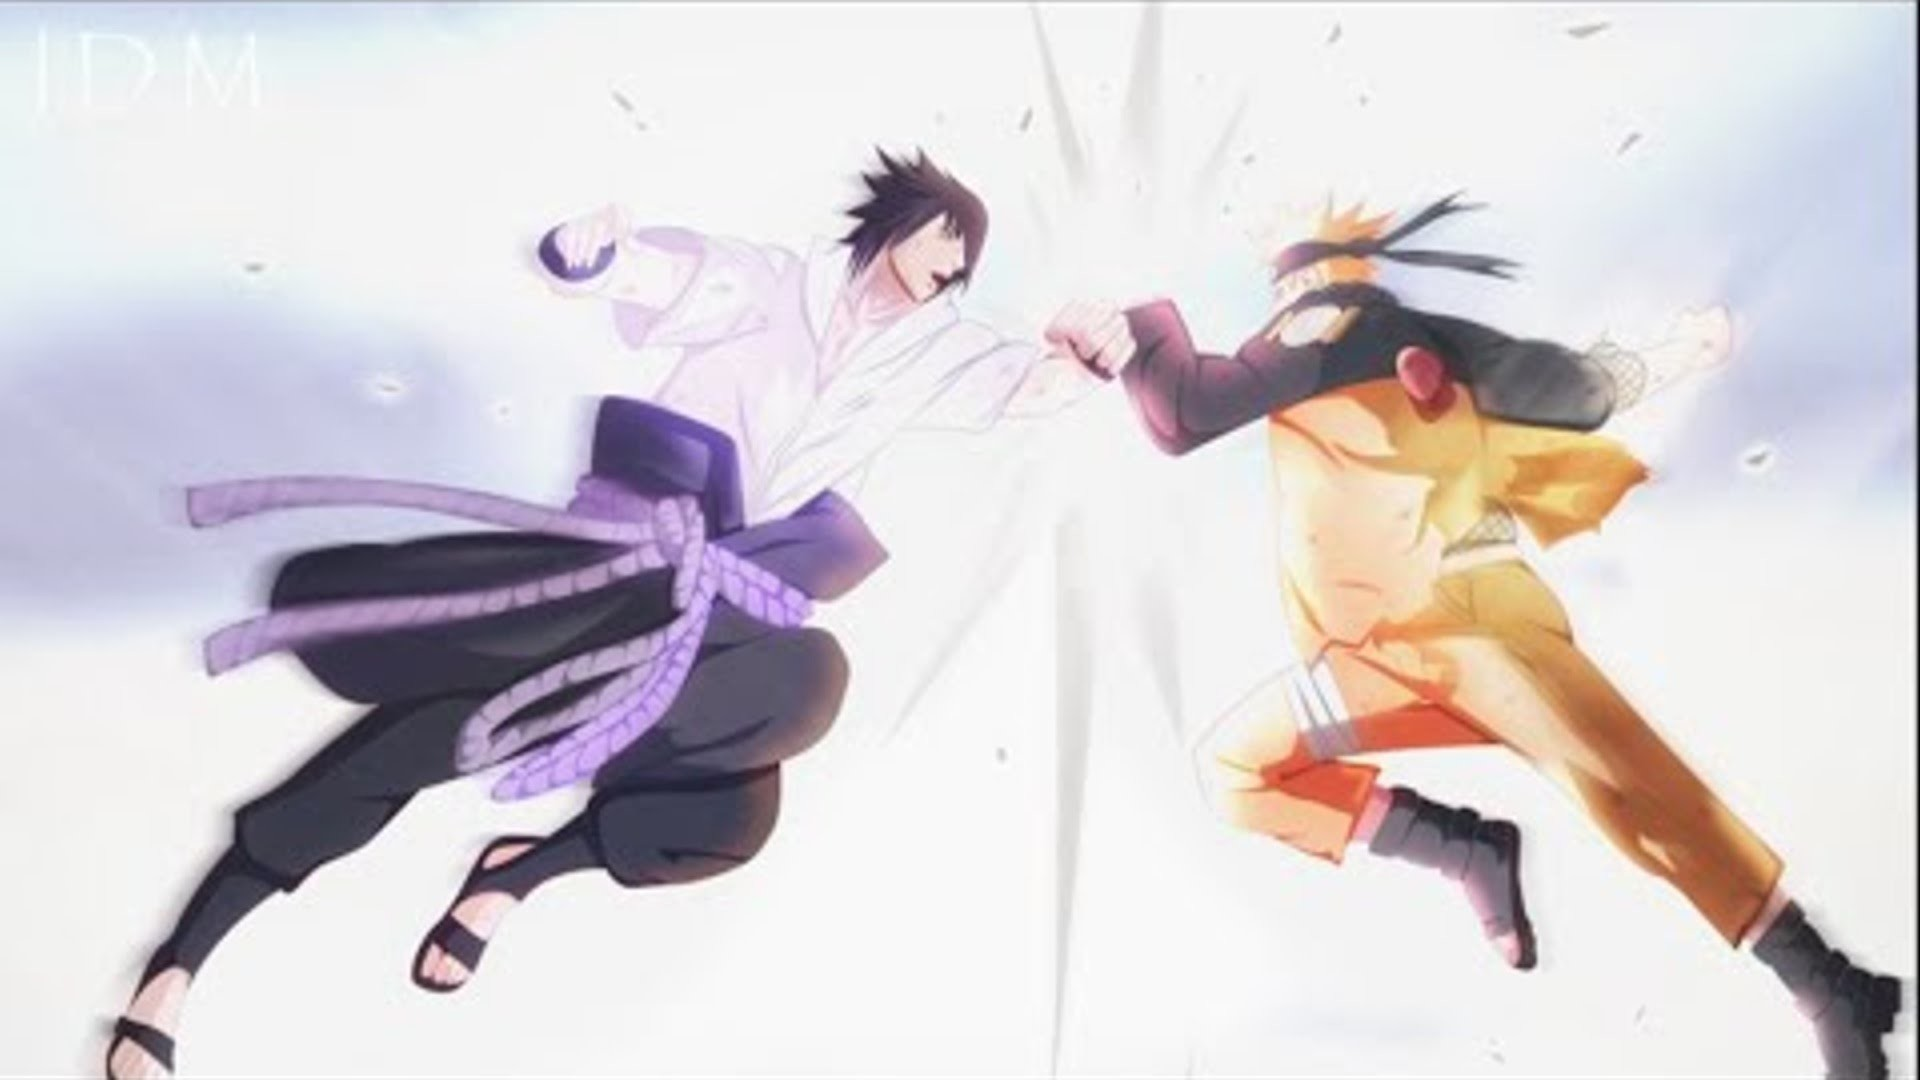 1920x1080 Naruto vs Sasuke - Final Fight 2017 - FINAL BATTLE -【HD】